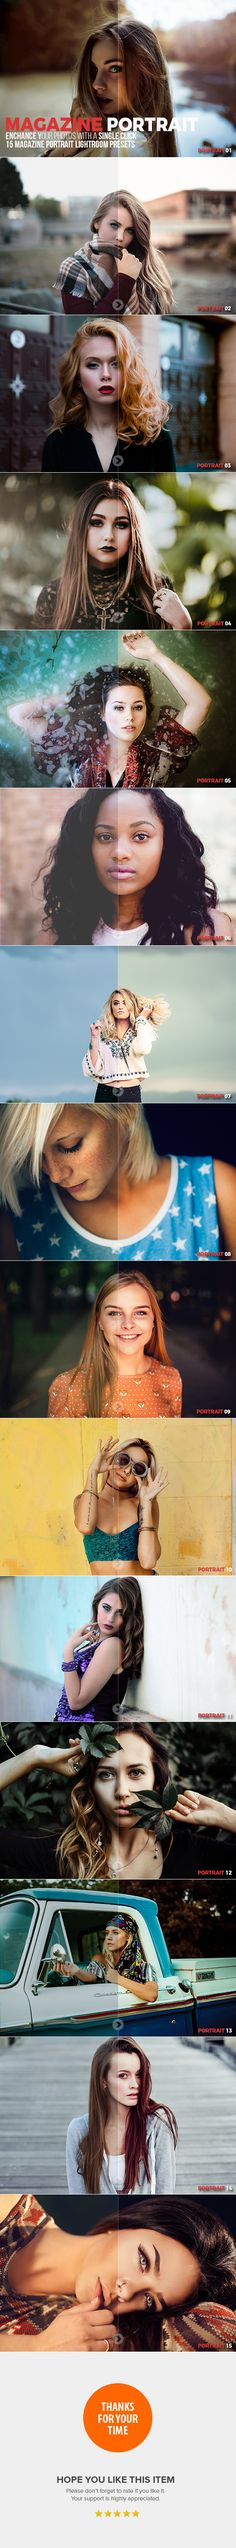 15 Magazine Portrait Lightroom Presets - Portrait #Lightroom Presets Download here: https://graphicriver.net/item/15-magazine-portrait-lightroom-presets/20012370?ref=alena994